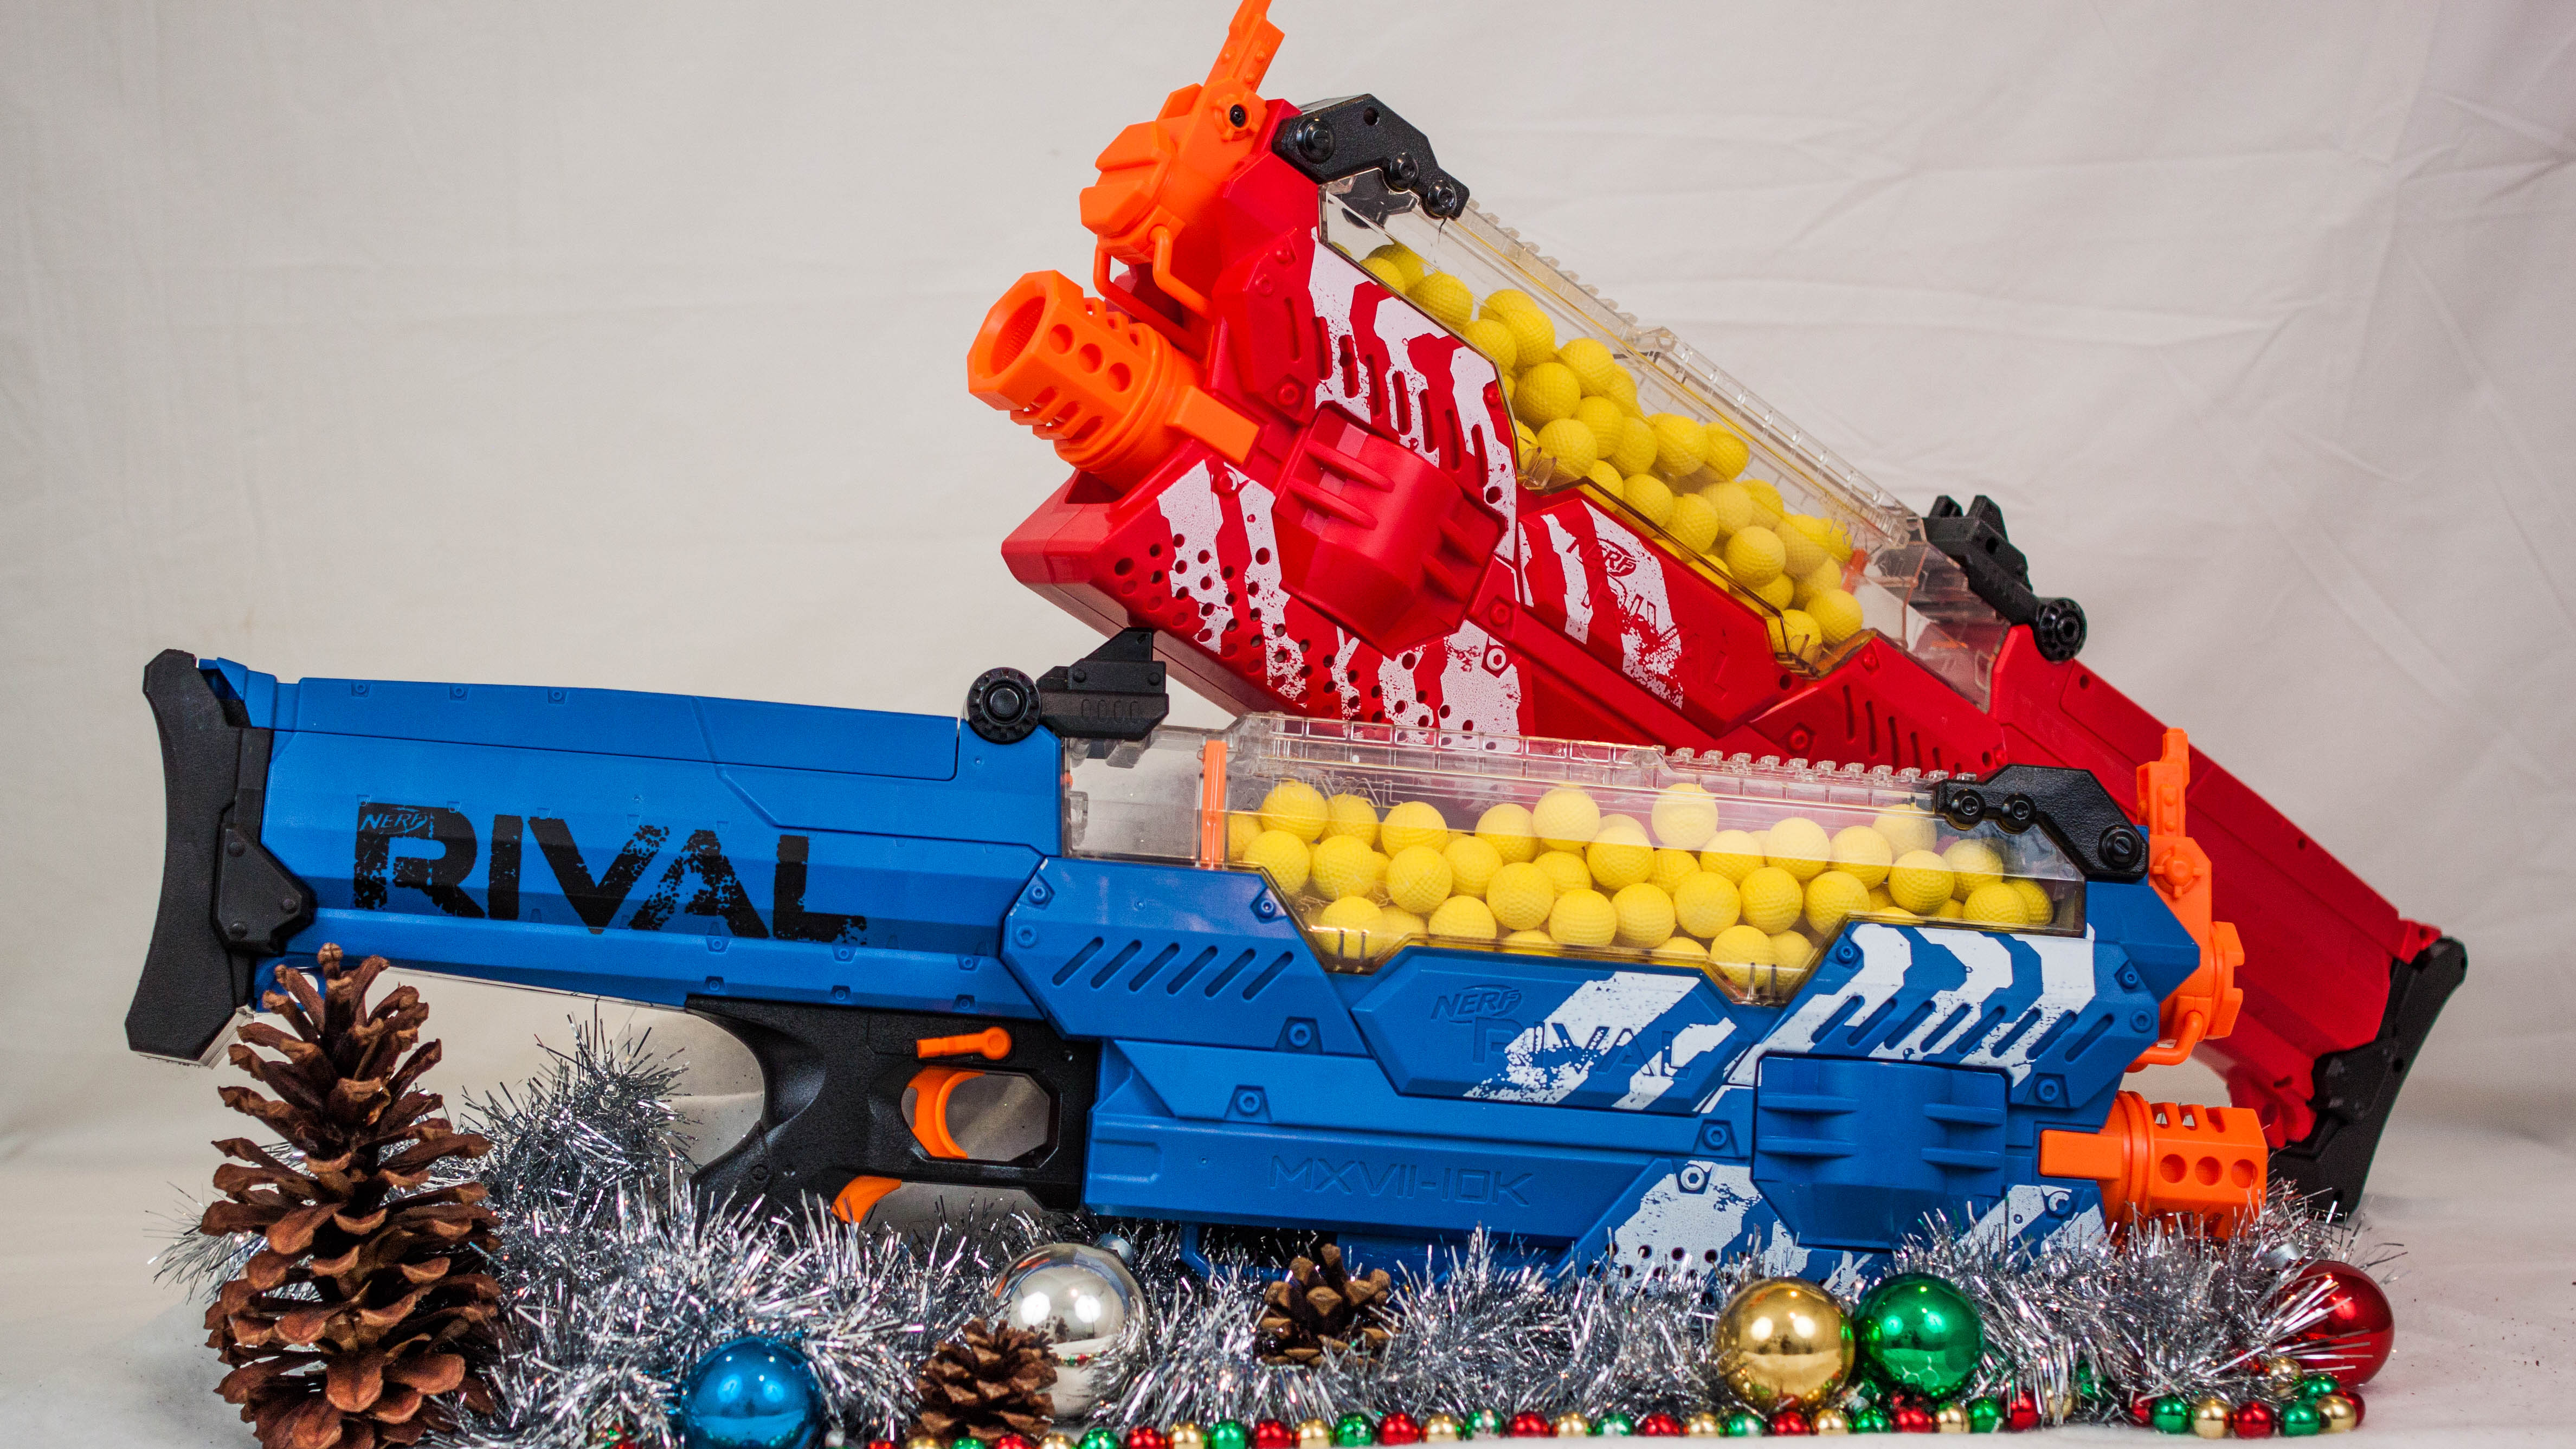 Nerf Rival Blaster: 15% off top toy of 2017 in Toys R Us Black Friday deal  | TechRadar